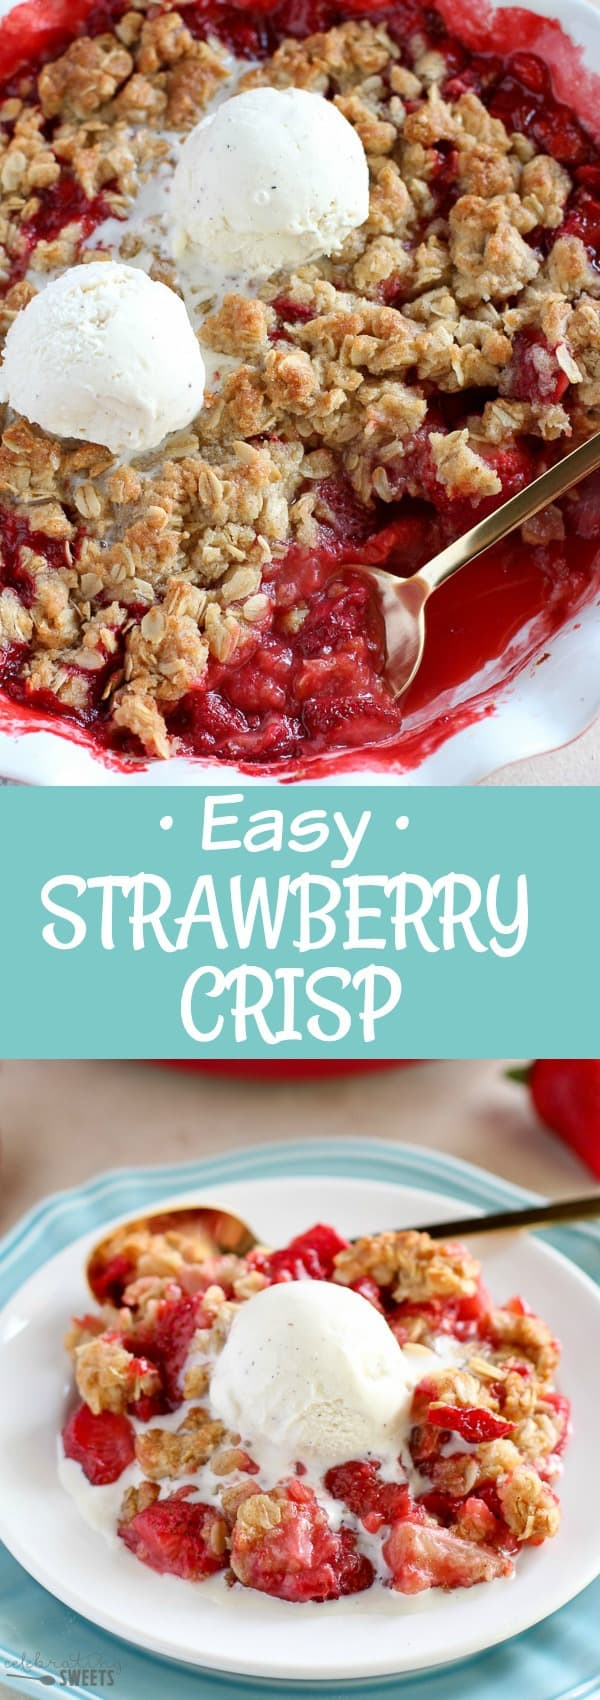 Easy Strawberry Crisp - Sweet and juicy strawberries topped with a buttery brown sugar oat crumble. This delicious fruit crisp comes together in minutes and it is sure to be a crowd pleaser.